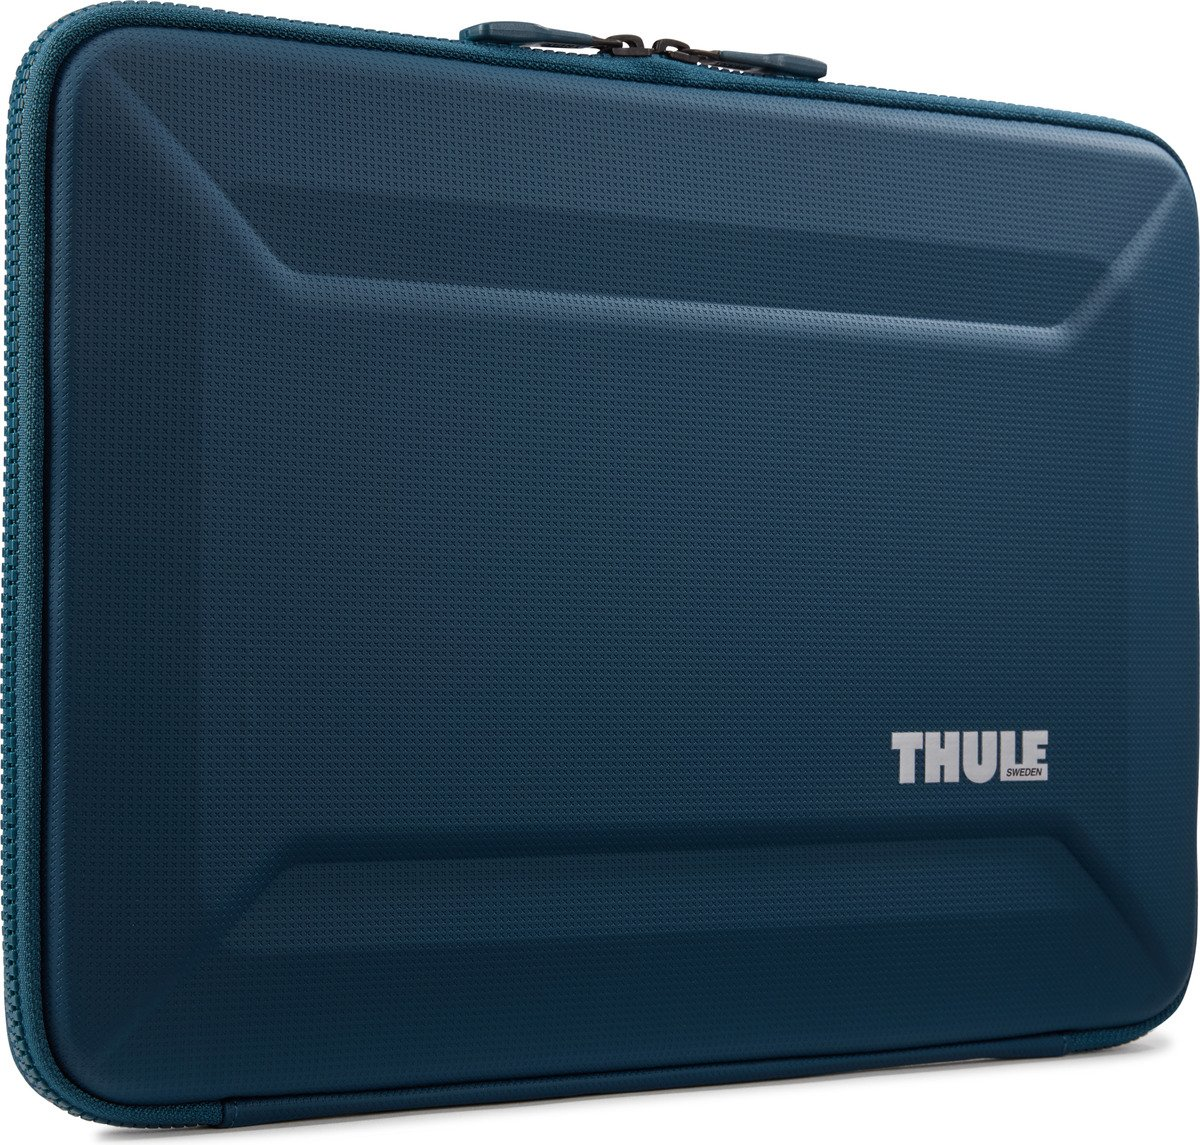 "Etui, Case na Macbook 15"" Thule Gauntlet - granatowy"